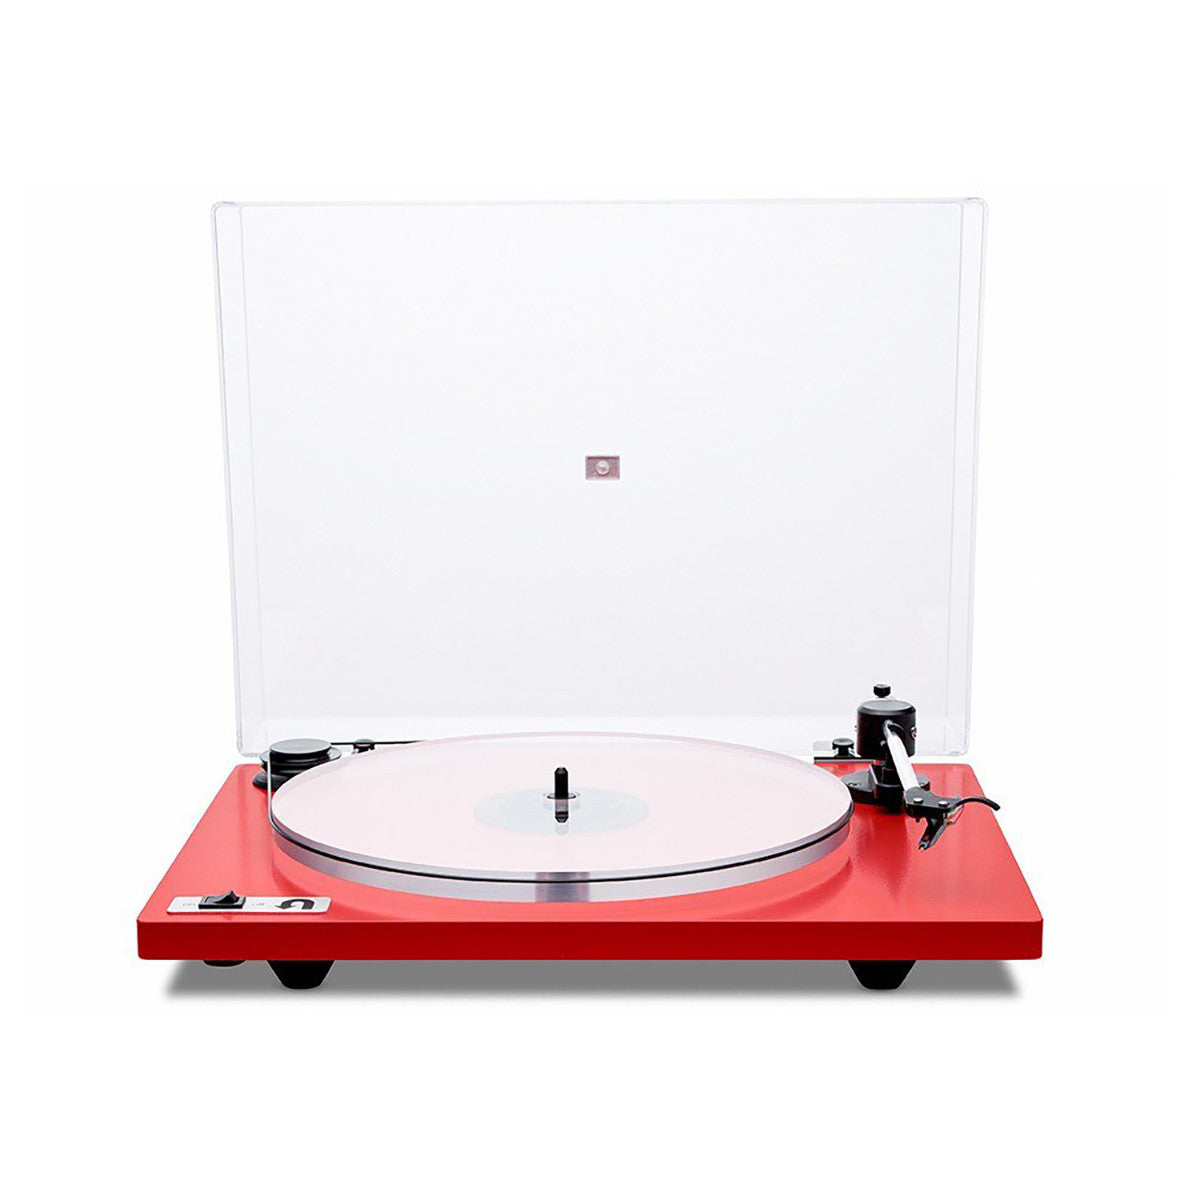 U-Turn Audio: Orbit Plus Turntable (OM5e) - Red